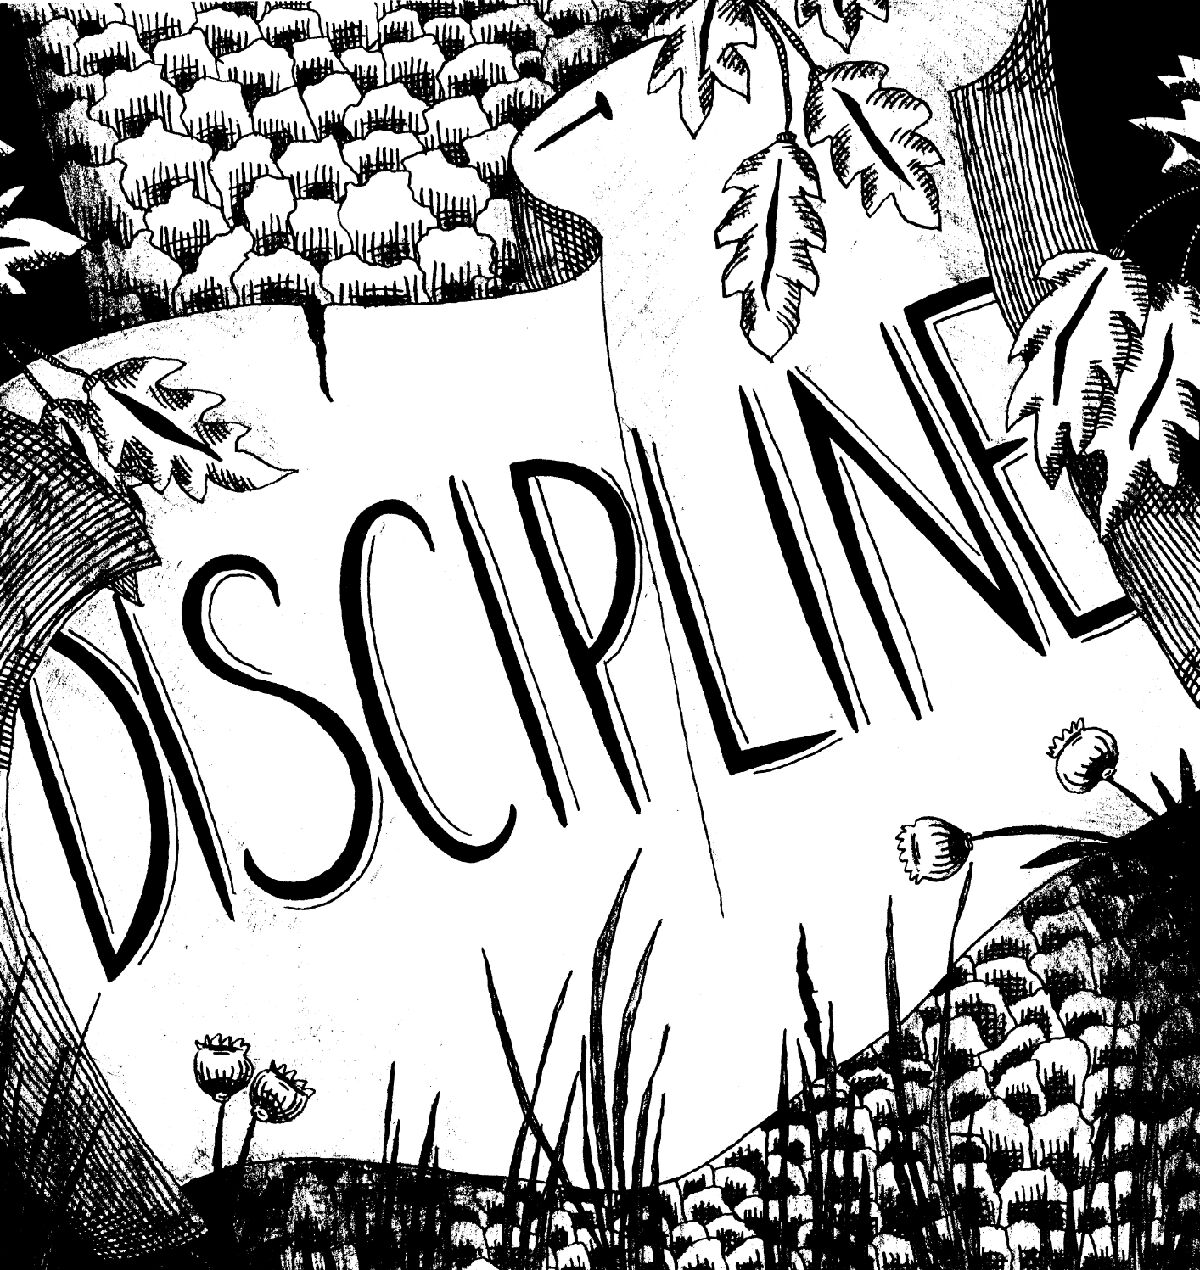 write an essay on discipline image source charlottejohnsonfileswordpresscom